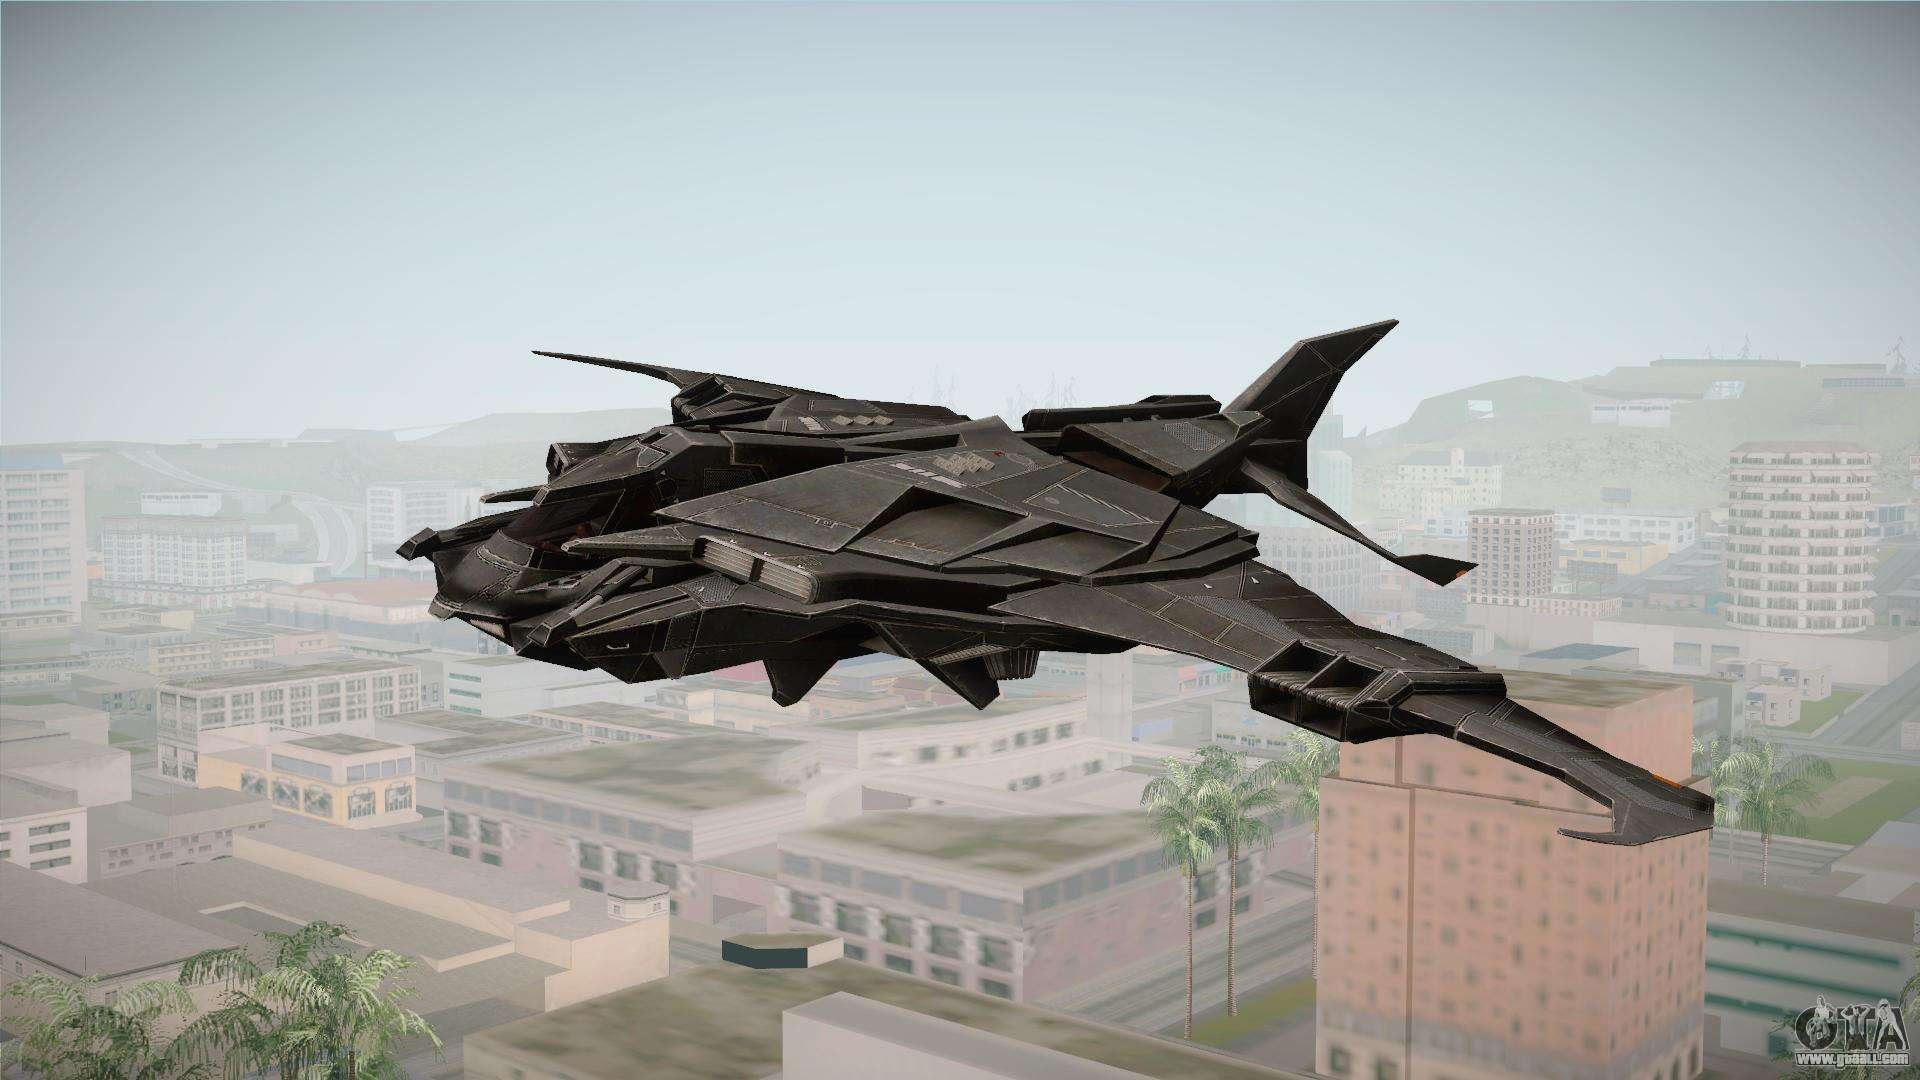 model airplane rc with 87488 Batman Arkham Knight Batwing V10 on Rc B 29 Crashes Show as well 18747 Stratolaunch Orbital Sciences Replaces Spacex besides 87488 Batman Arkham Knight Batwing V10 additionally Army Helicopter Clipart likewise Watch.